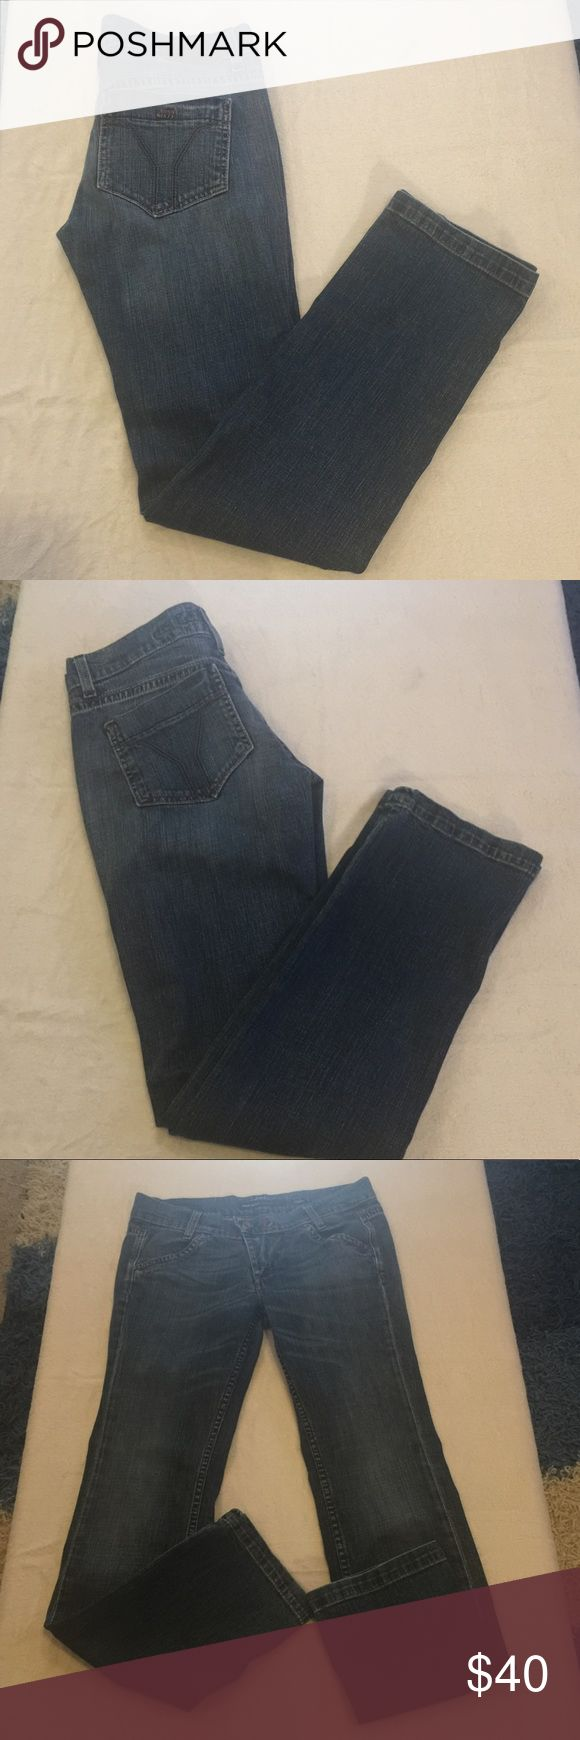 Miss Sixty Karen Straight Leg Jeans Size 31 Miss Sixty Karen Straight Leg Jeans Size 31. In excellent used condition. 98% cotton, 2% elastane. Measurements approximate. Waist 31 in. Rise 8 in. Inseam 31 1/2 in. 2 front pockets, 2 rear pockets. Unique 2 button & zipper closure. Miss Sixty Jeans Straight Leg